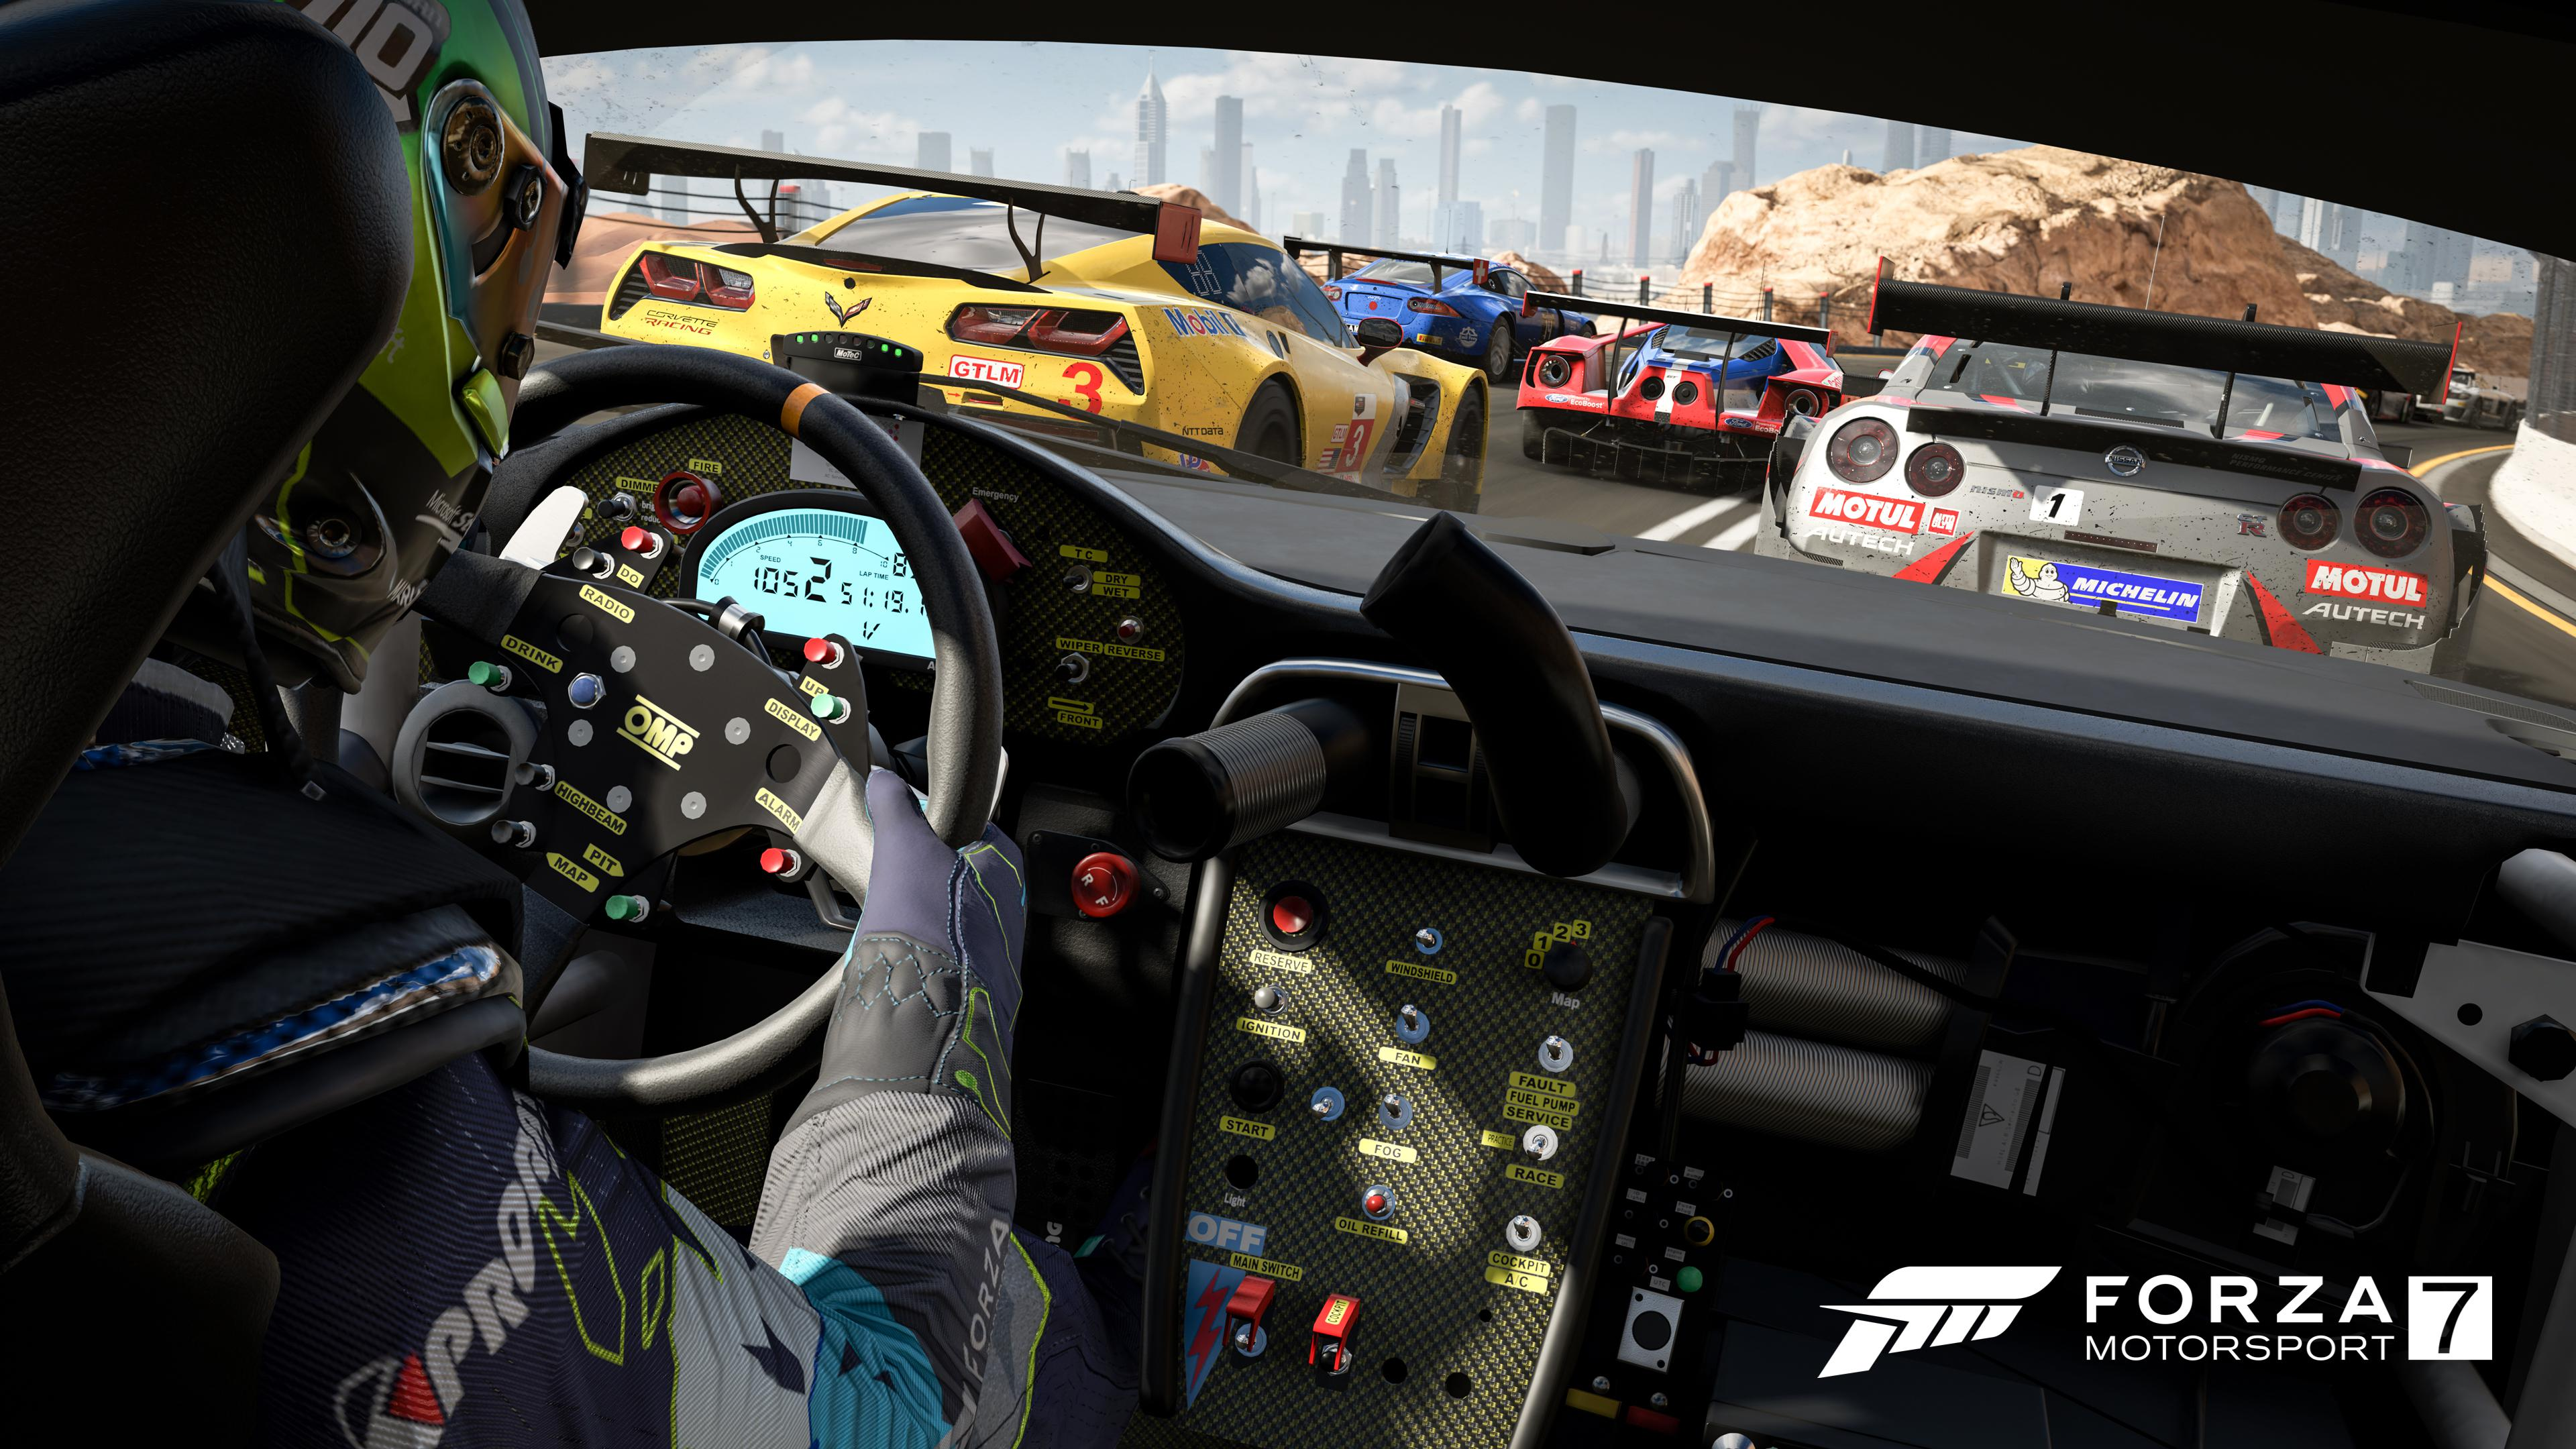 Forza 7 is one of the few games that really shows off the X's graphical muscle